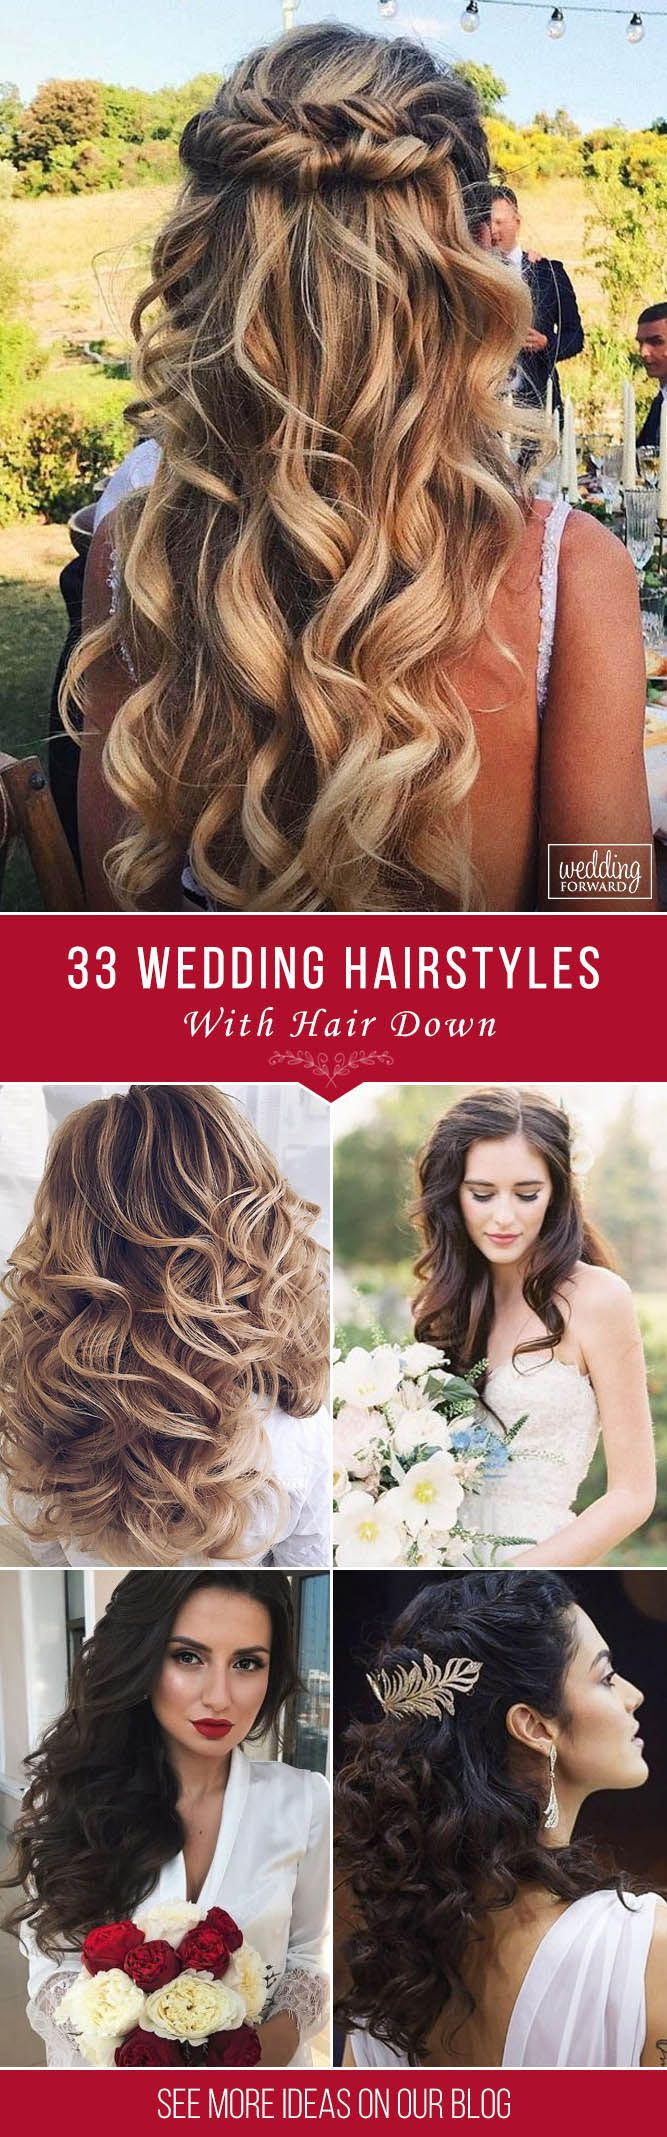 33 Exquisite Wedding Hairstyles With Hair Down ❤ Wedding hairstyles with hair ...